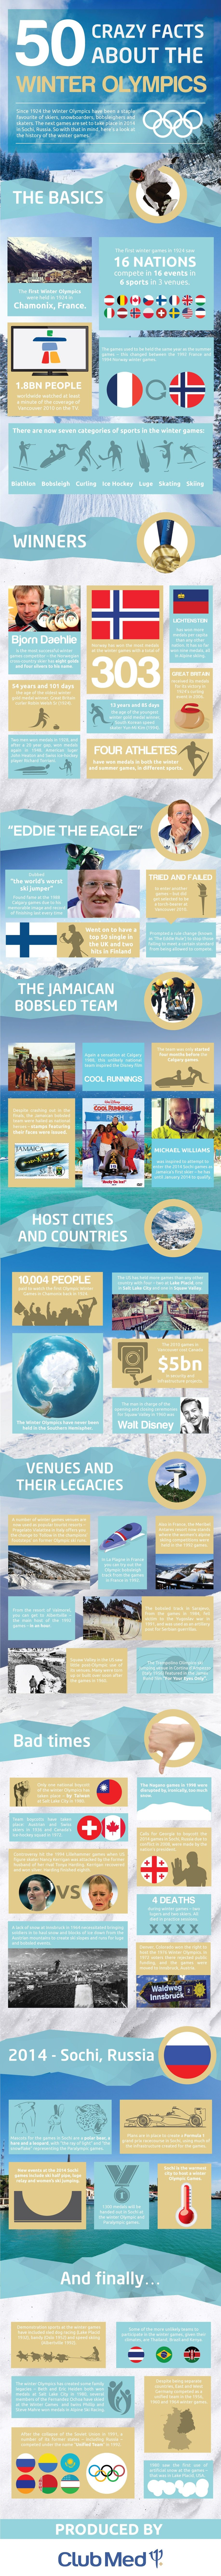 facts about winter olympics infographic